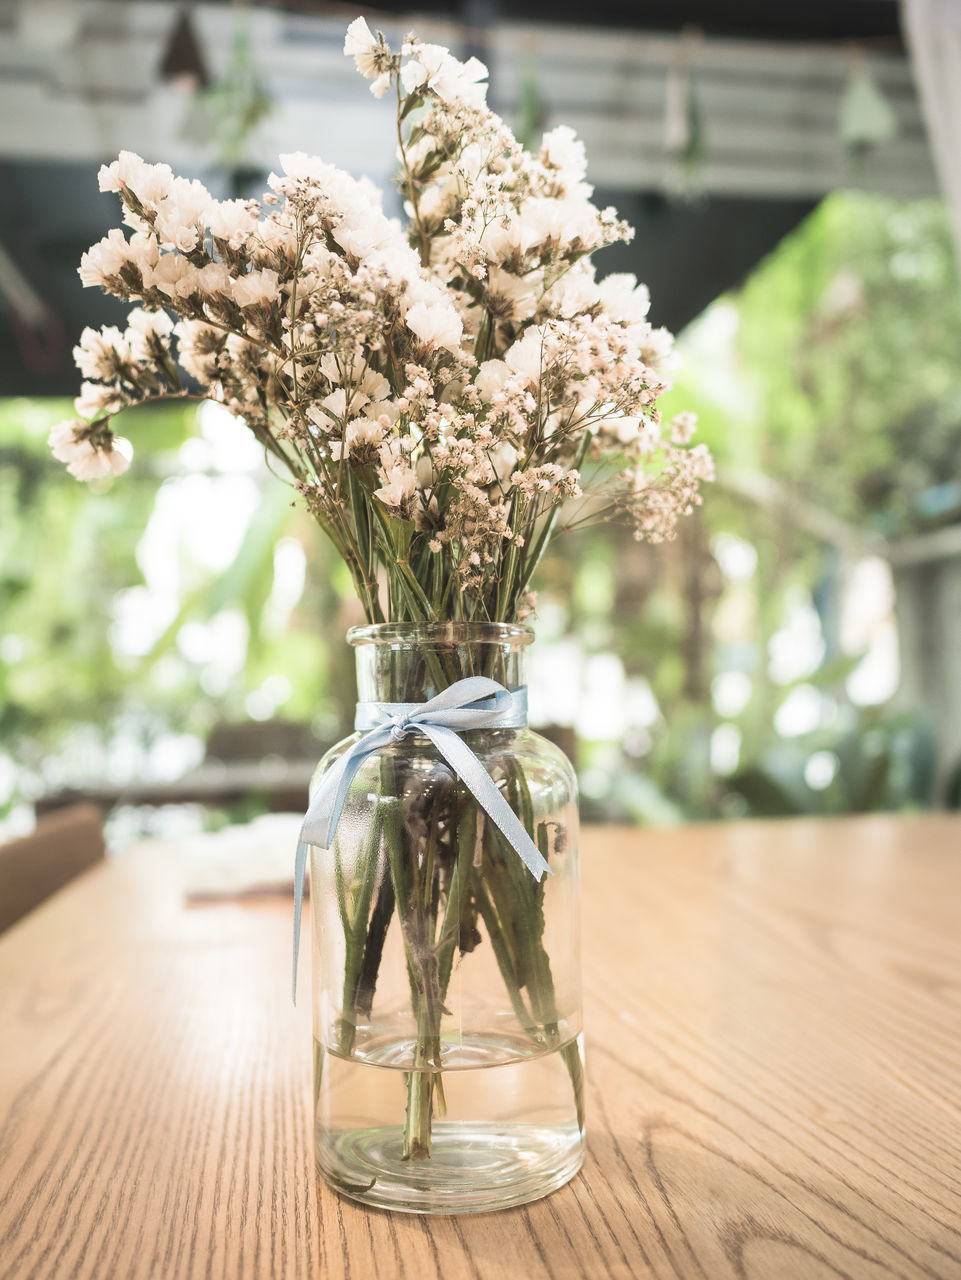 table, wood - material, focus on foreground, no people, indoors, vase, day, close-up, flower, nature, fragility, freshness, tree